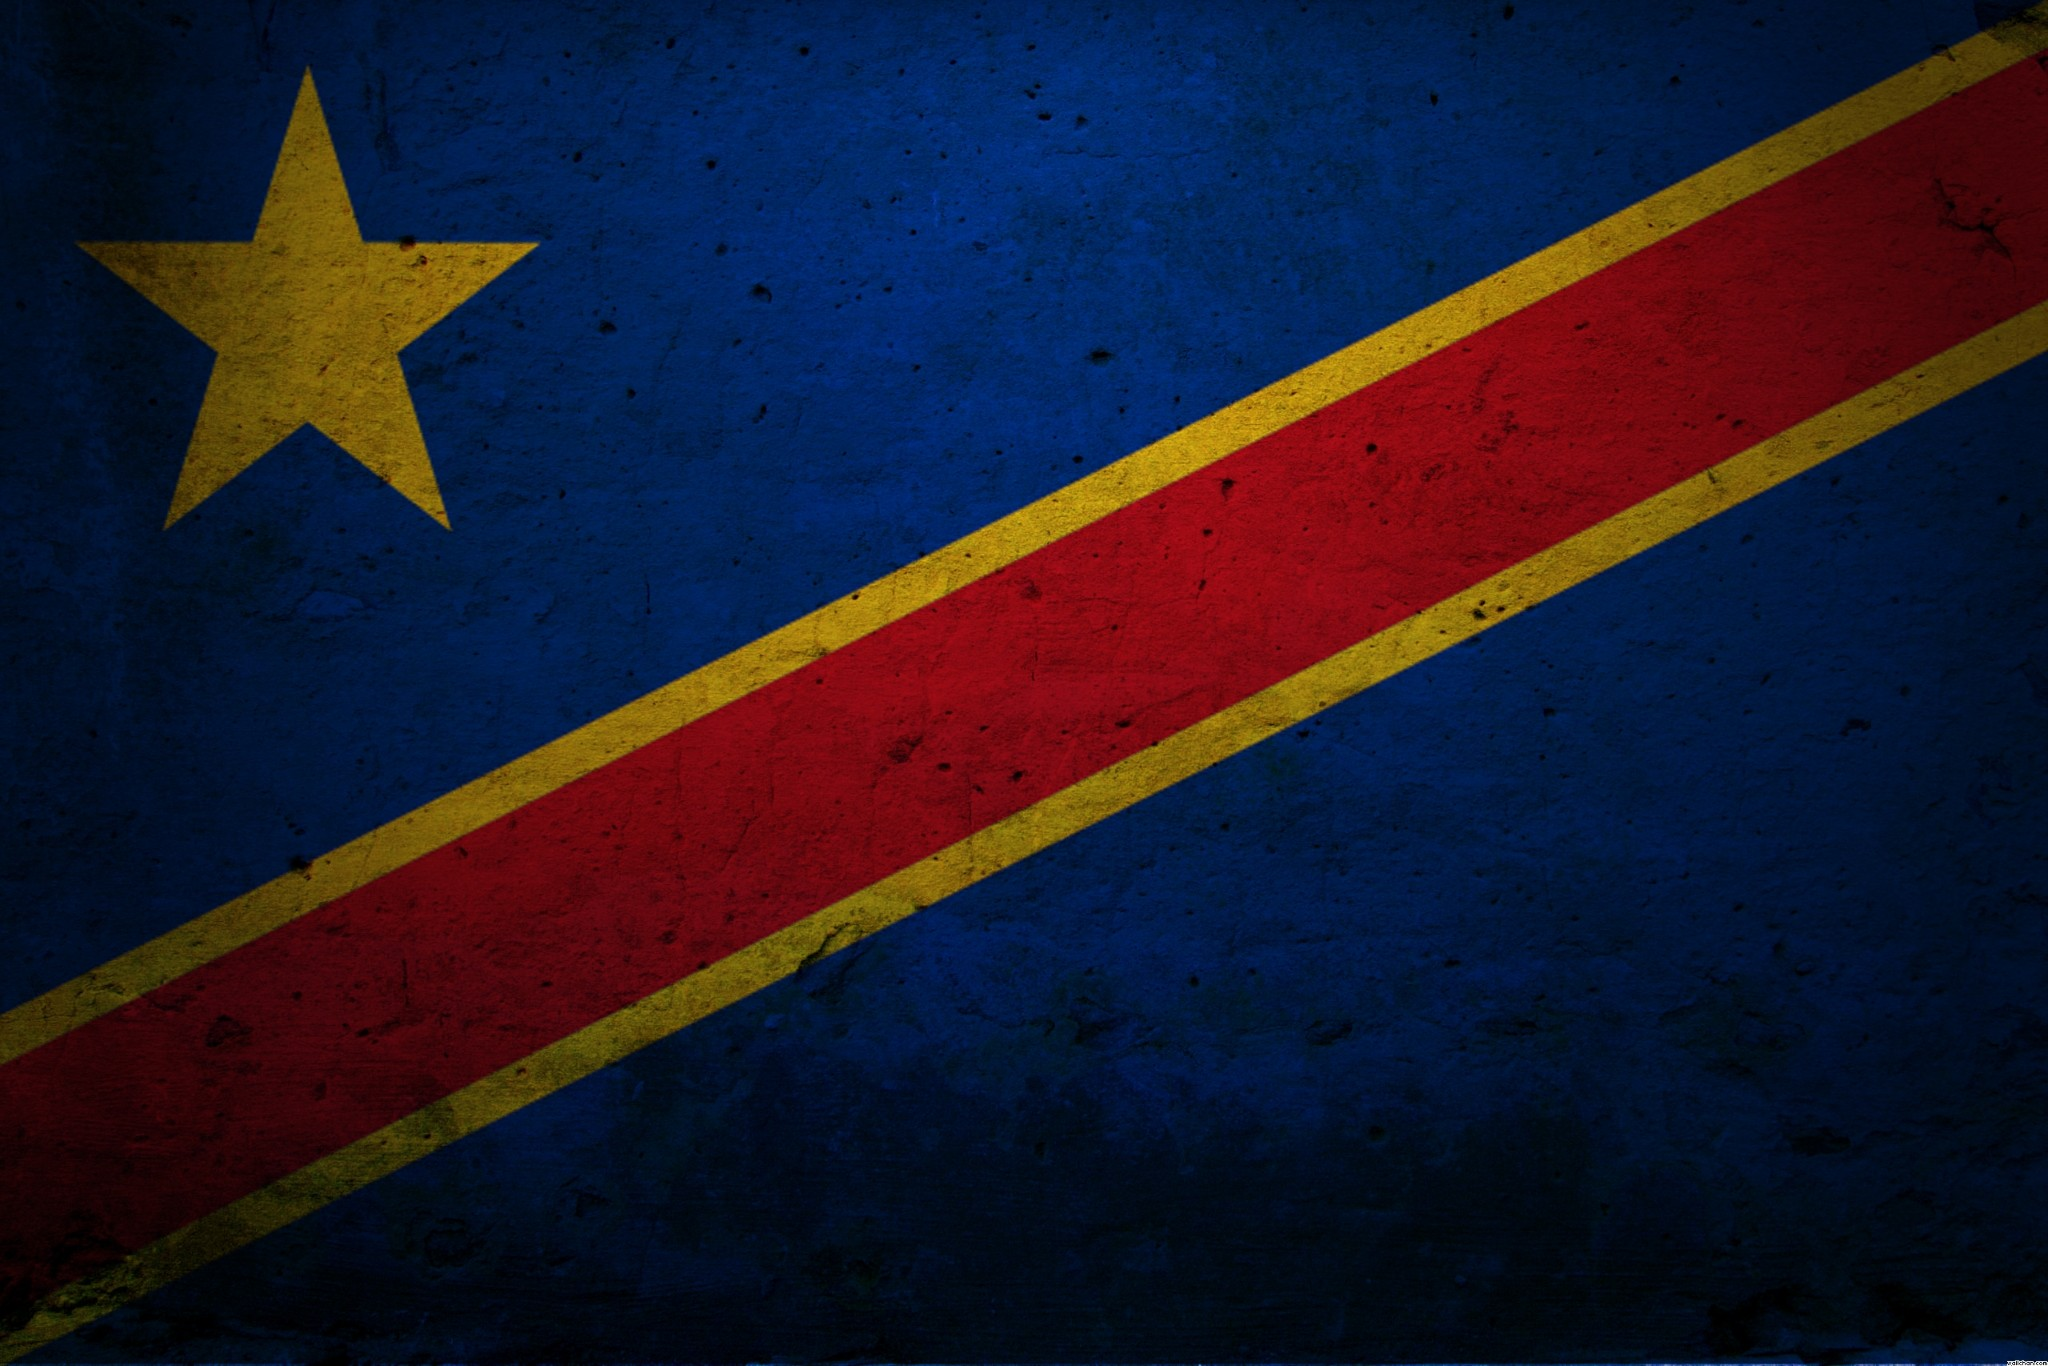 Democratic Republic of Congo flag and wallpaper